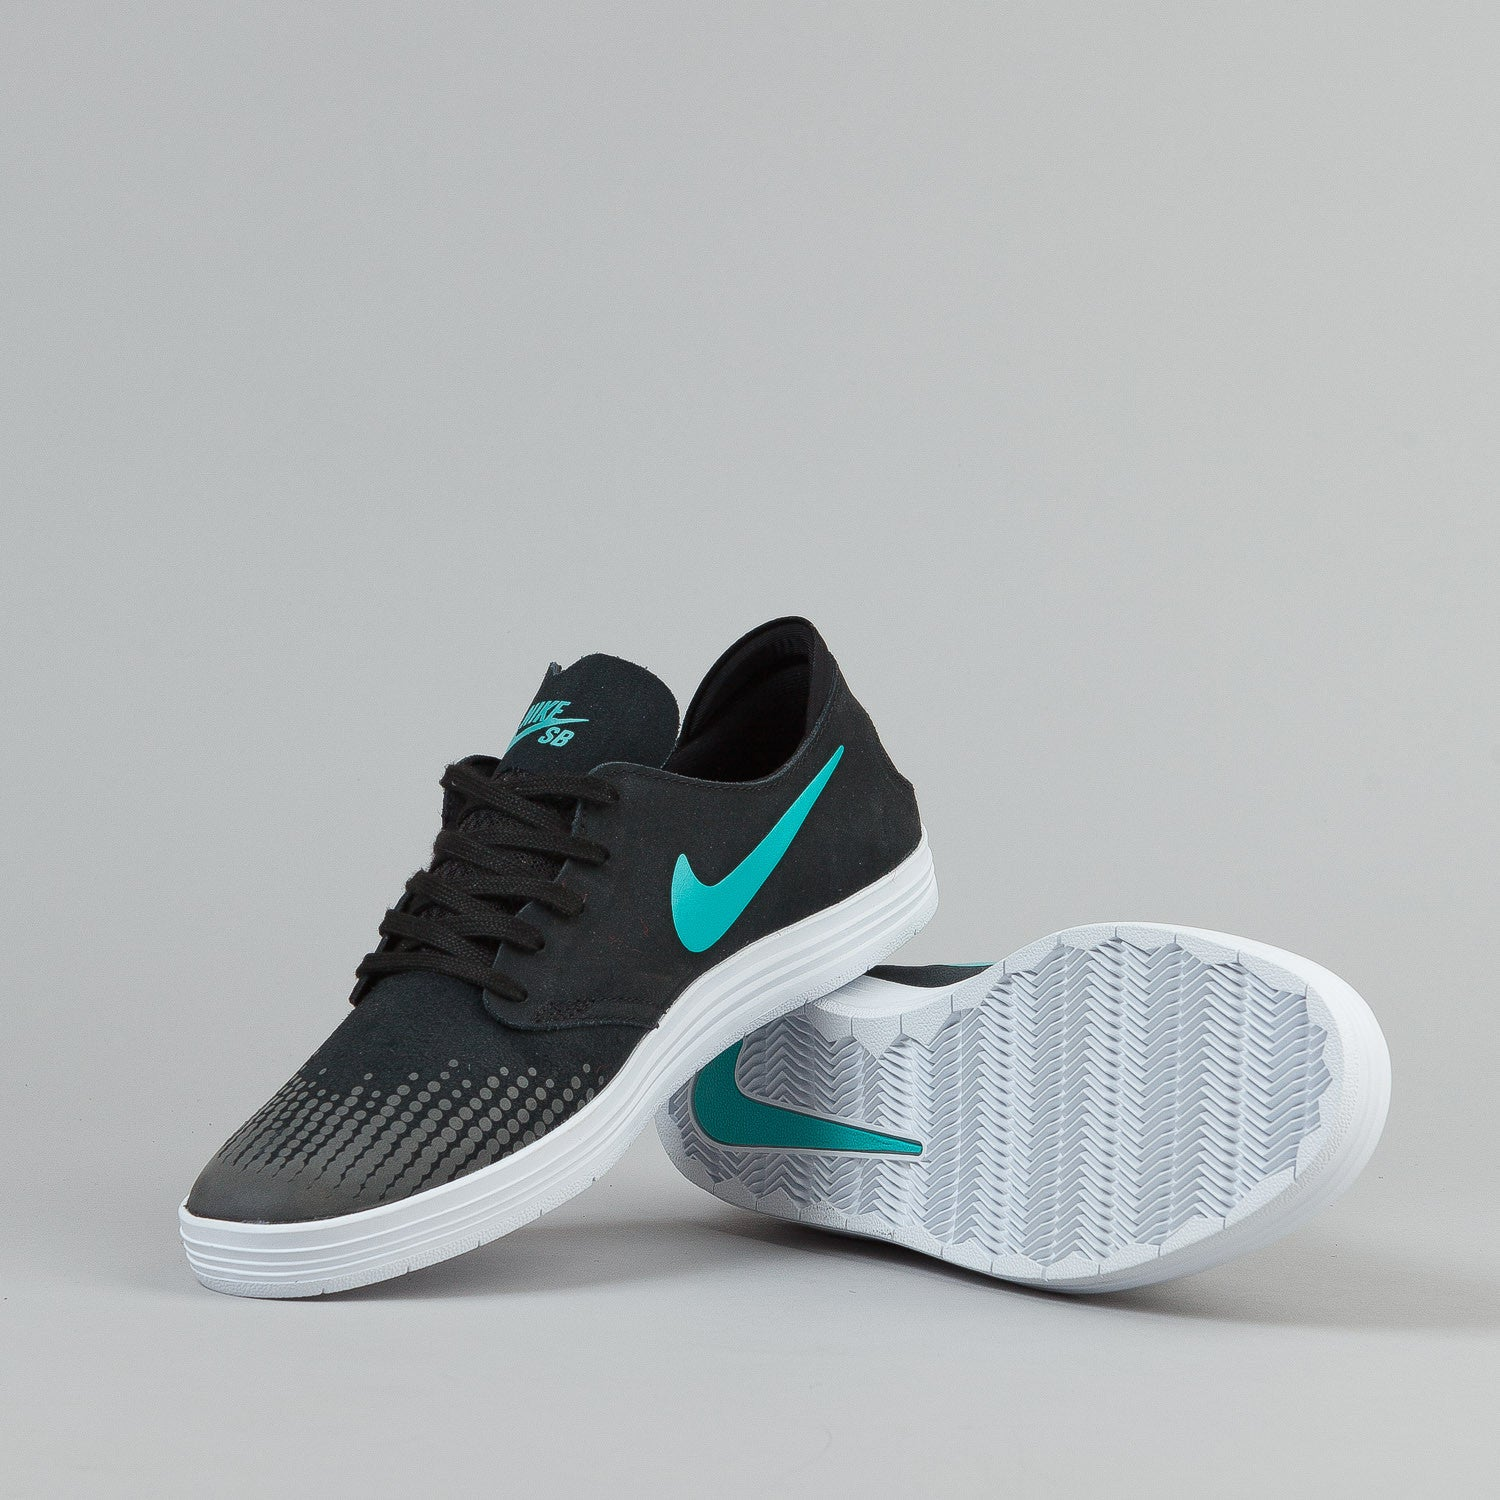 Nike SB Lunar Oneshot Shoes - Black / Lt Retro / White